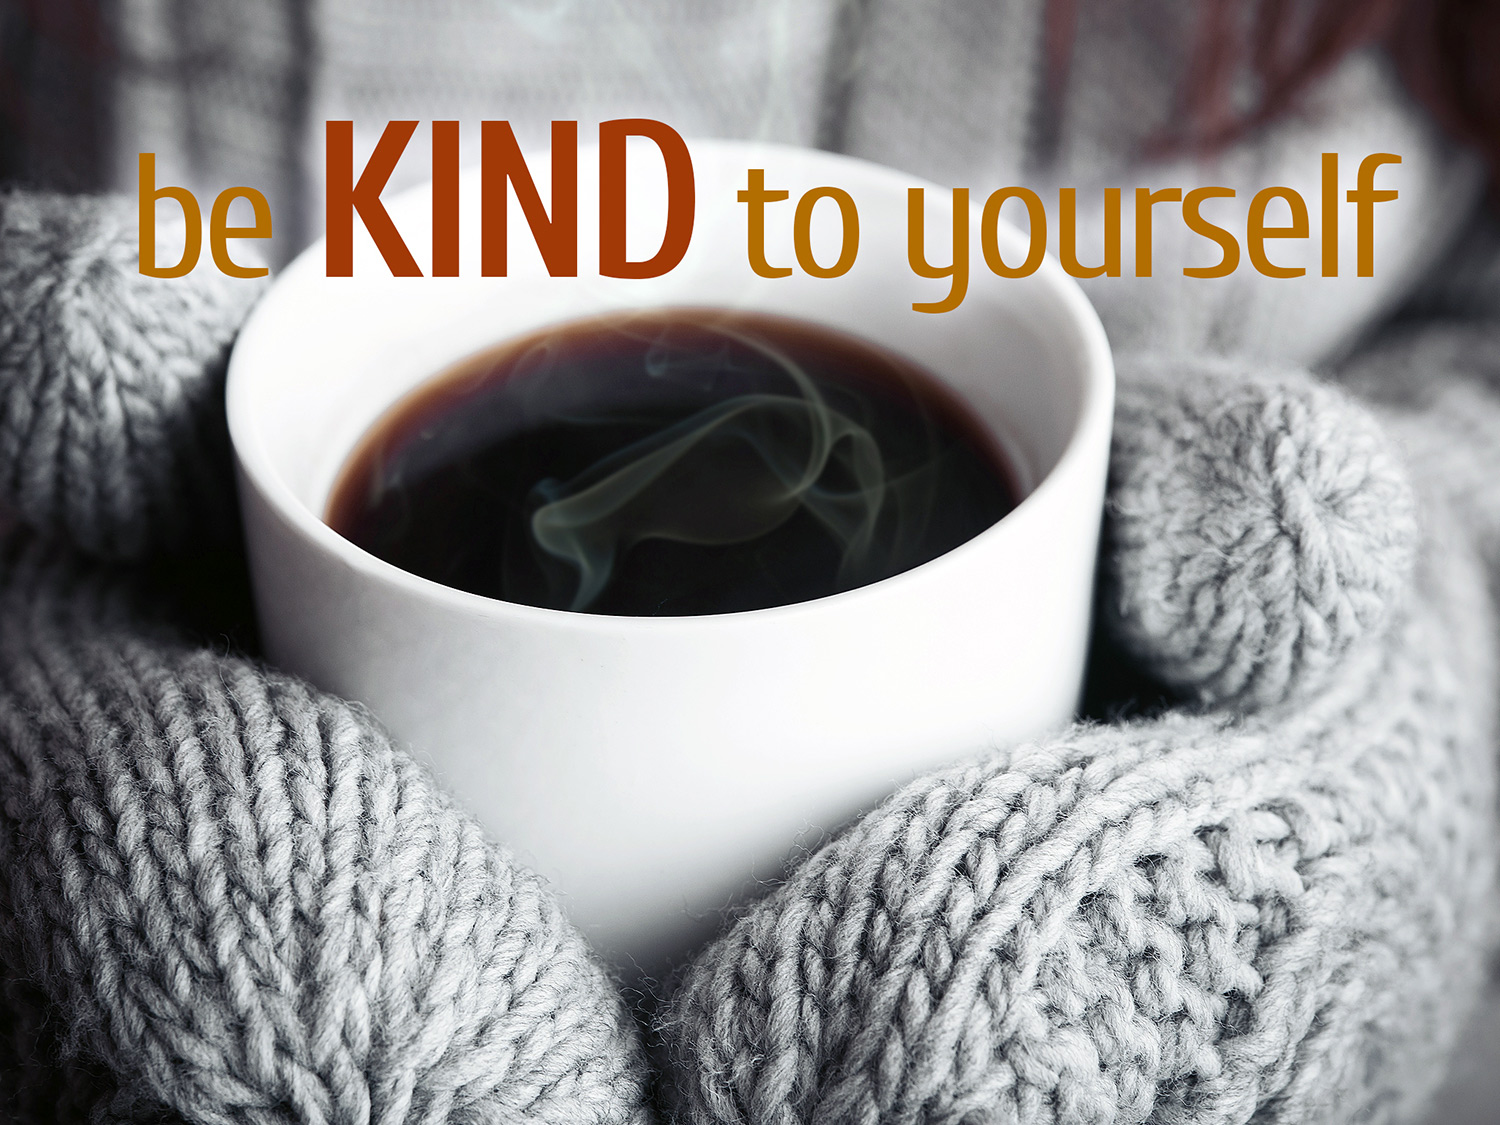 daily inspirational quote image: close up 2 hands, wearing gray knitted mittens holding a smoking hot coffee mug